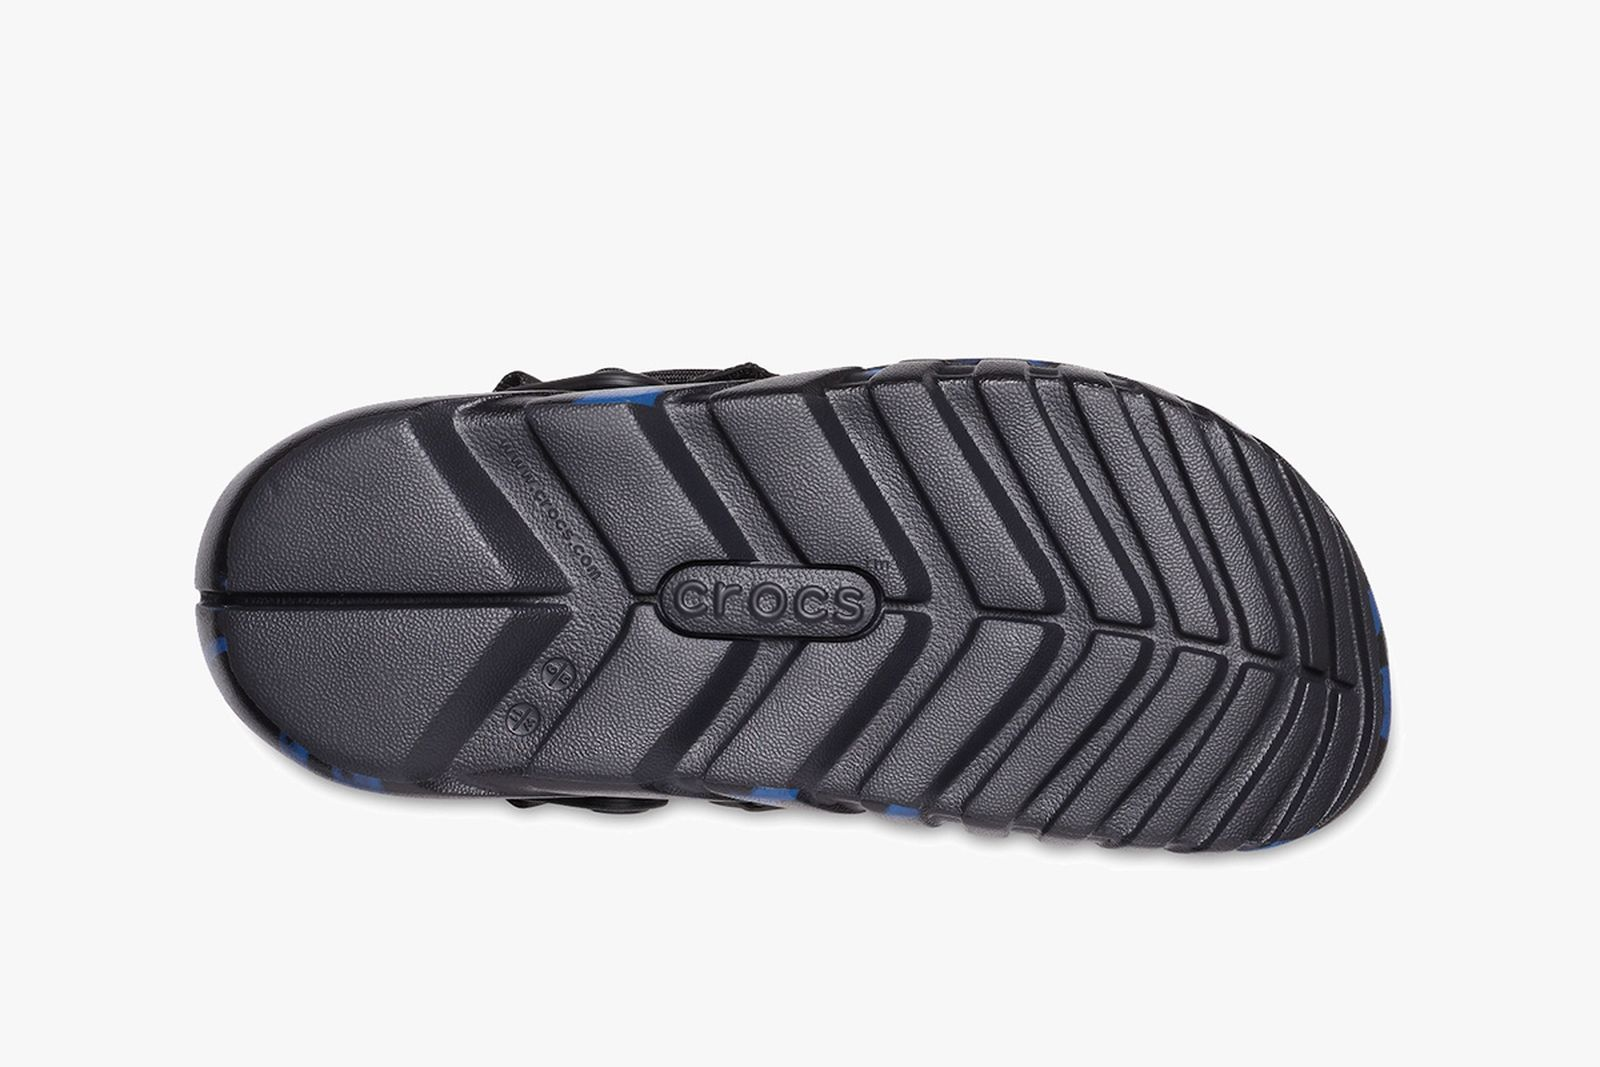 post-malone-crocs-duet-max-clog-release-date-price-03